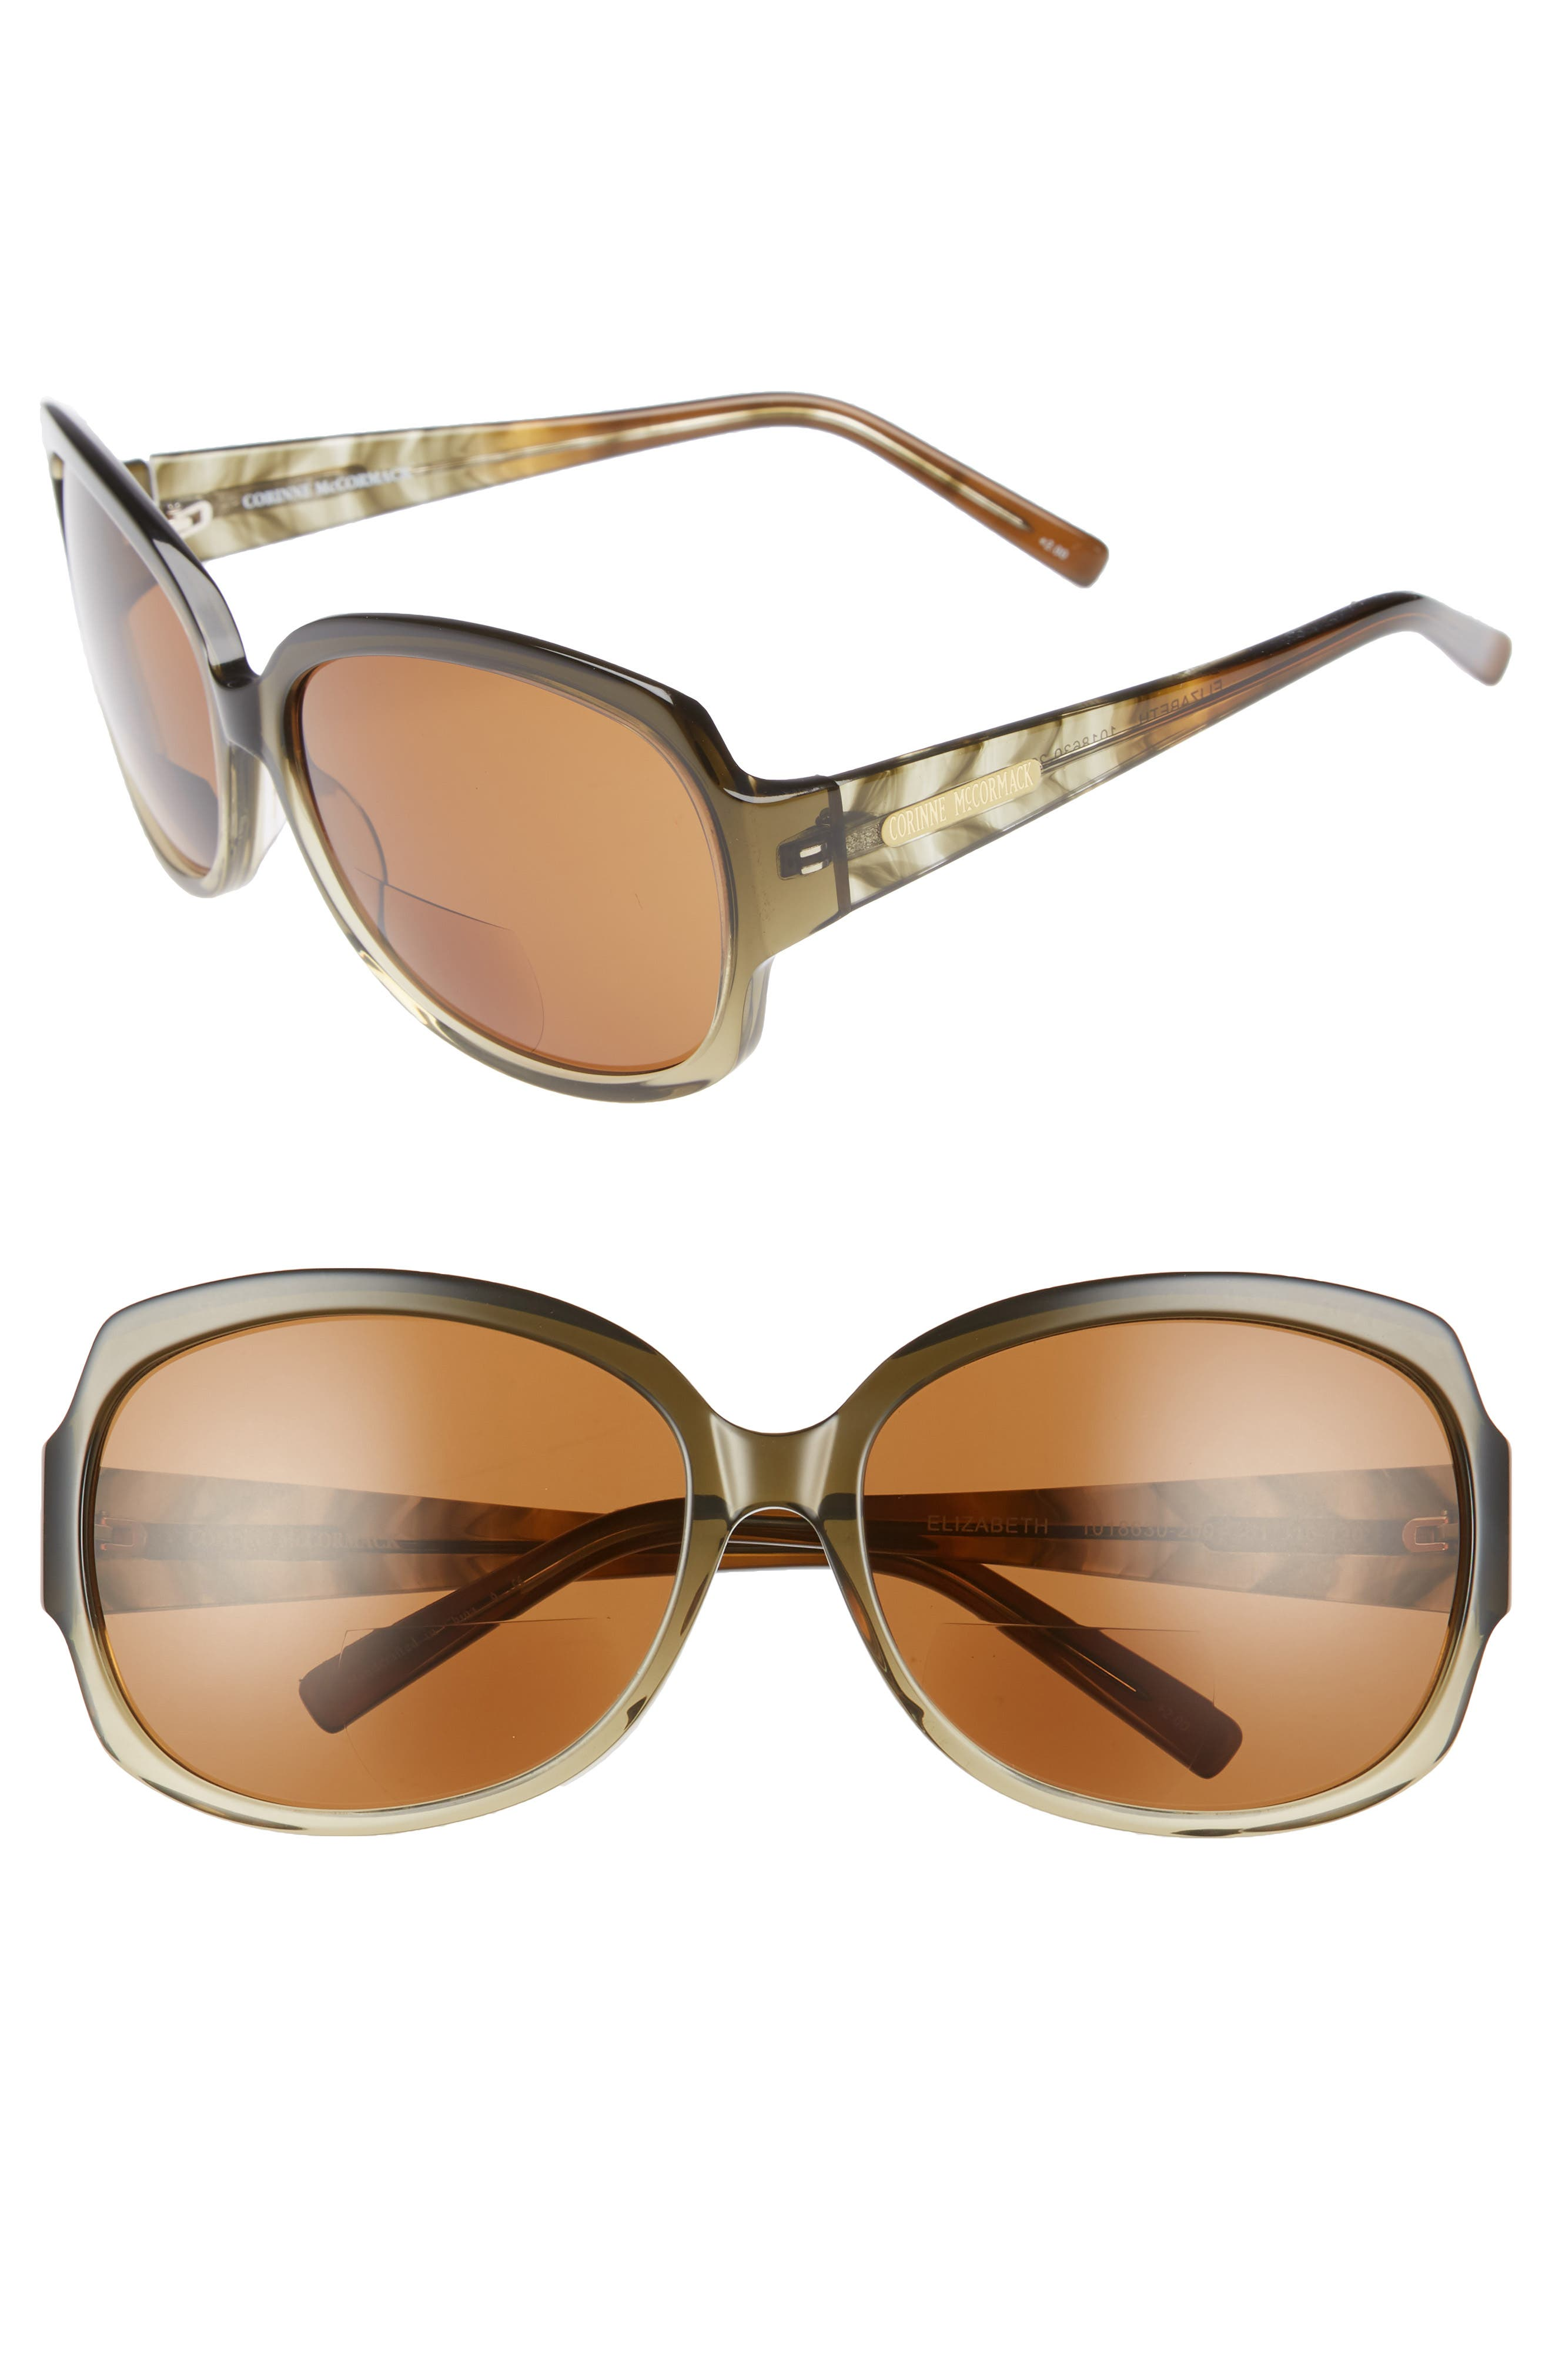 'Elizabeth' 61mm Reading Sunglasses,                             Main thumbnail 1, color,                             300